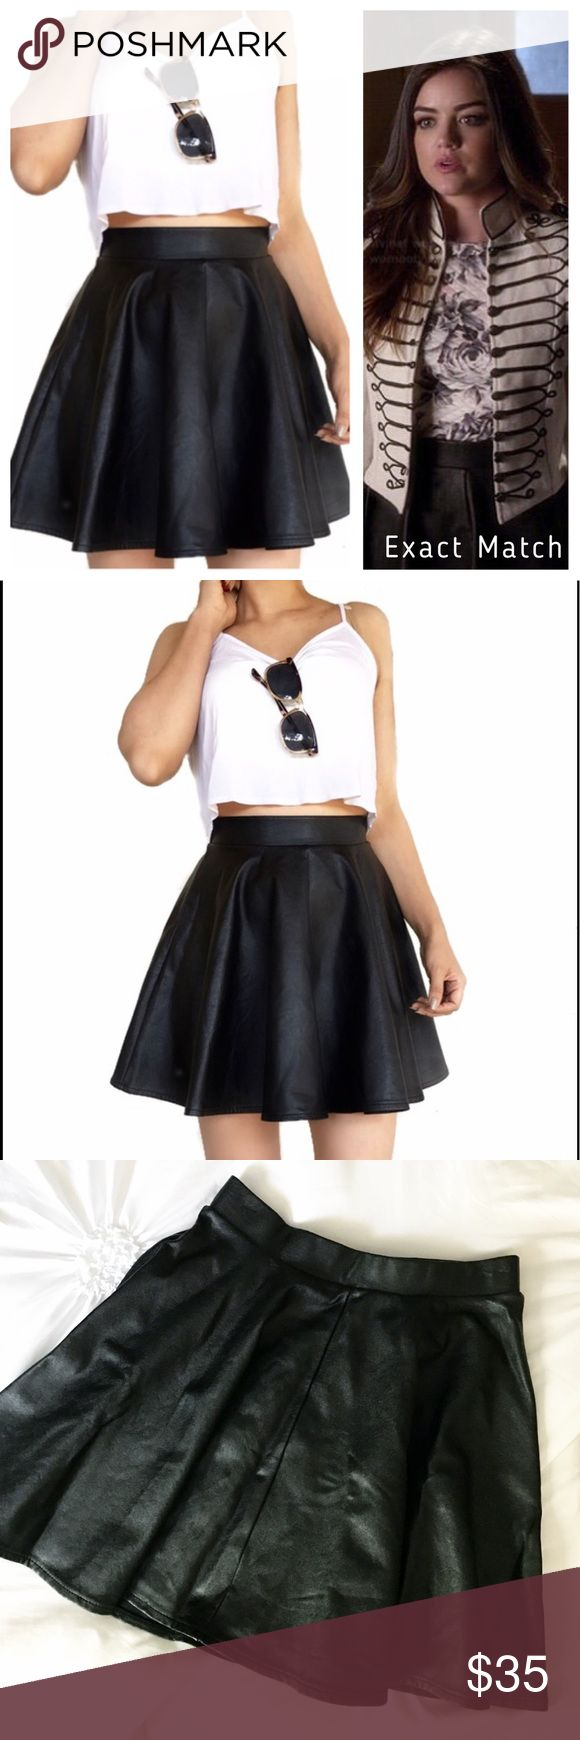 Topshop Faux Leather Skater Skirt An amazing skirt! A chic and staple piece for any wardrobe. Mix and match or layer this fun skater style! EUC. As seen on Pretty Little Liars worn by Aria Montgomery / Lucy Hale. PLL wardrobe. Topshop Skirts Circle & Skater